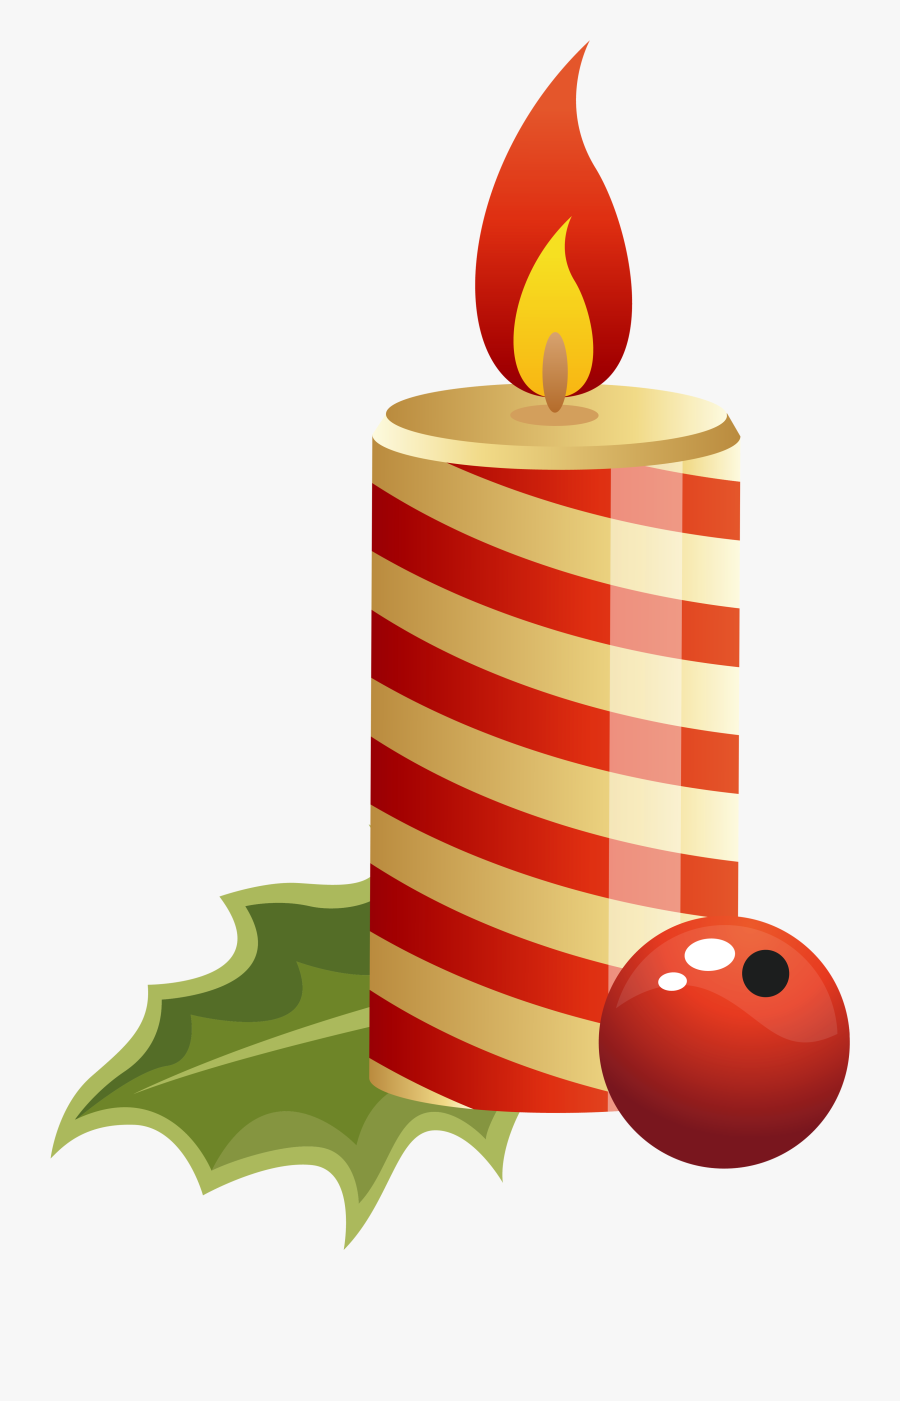 Candle Clipart Christmas Candles - Christmas Candle Clipart, Transparent Clipart